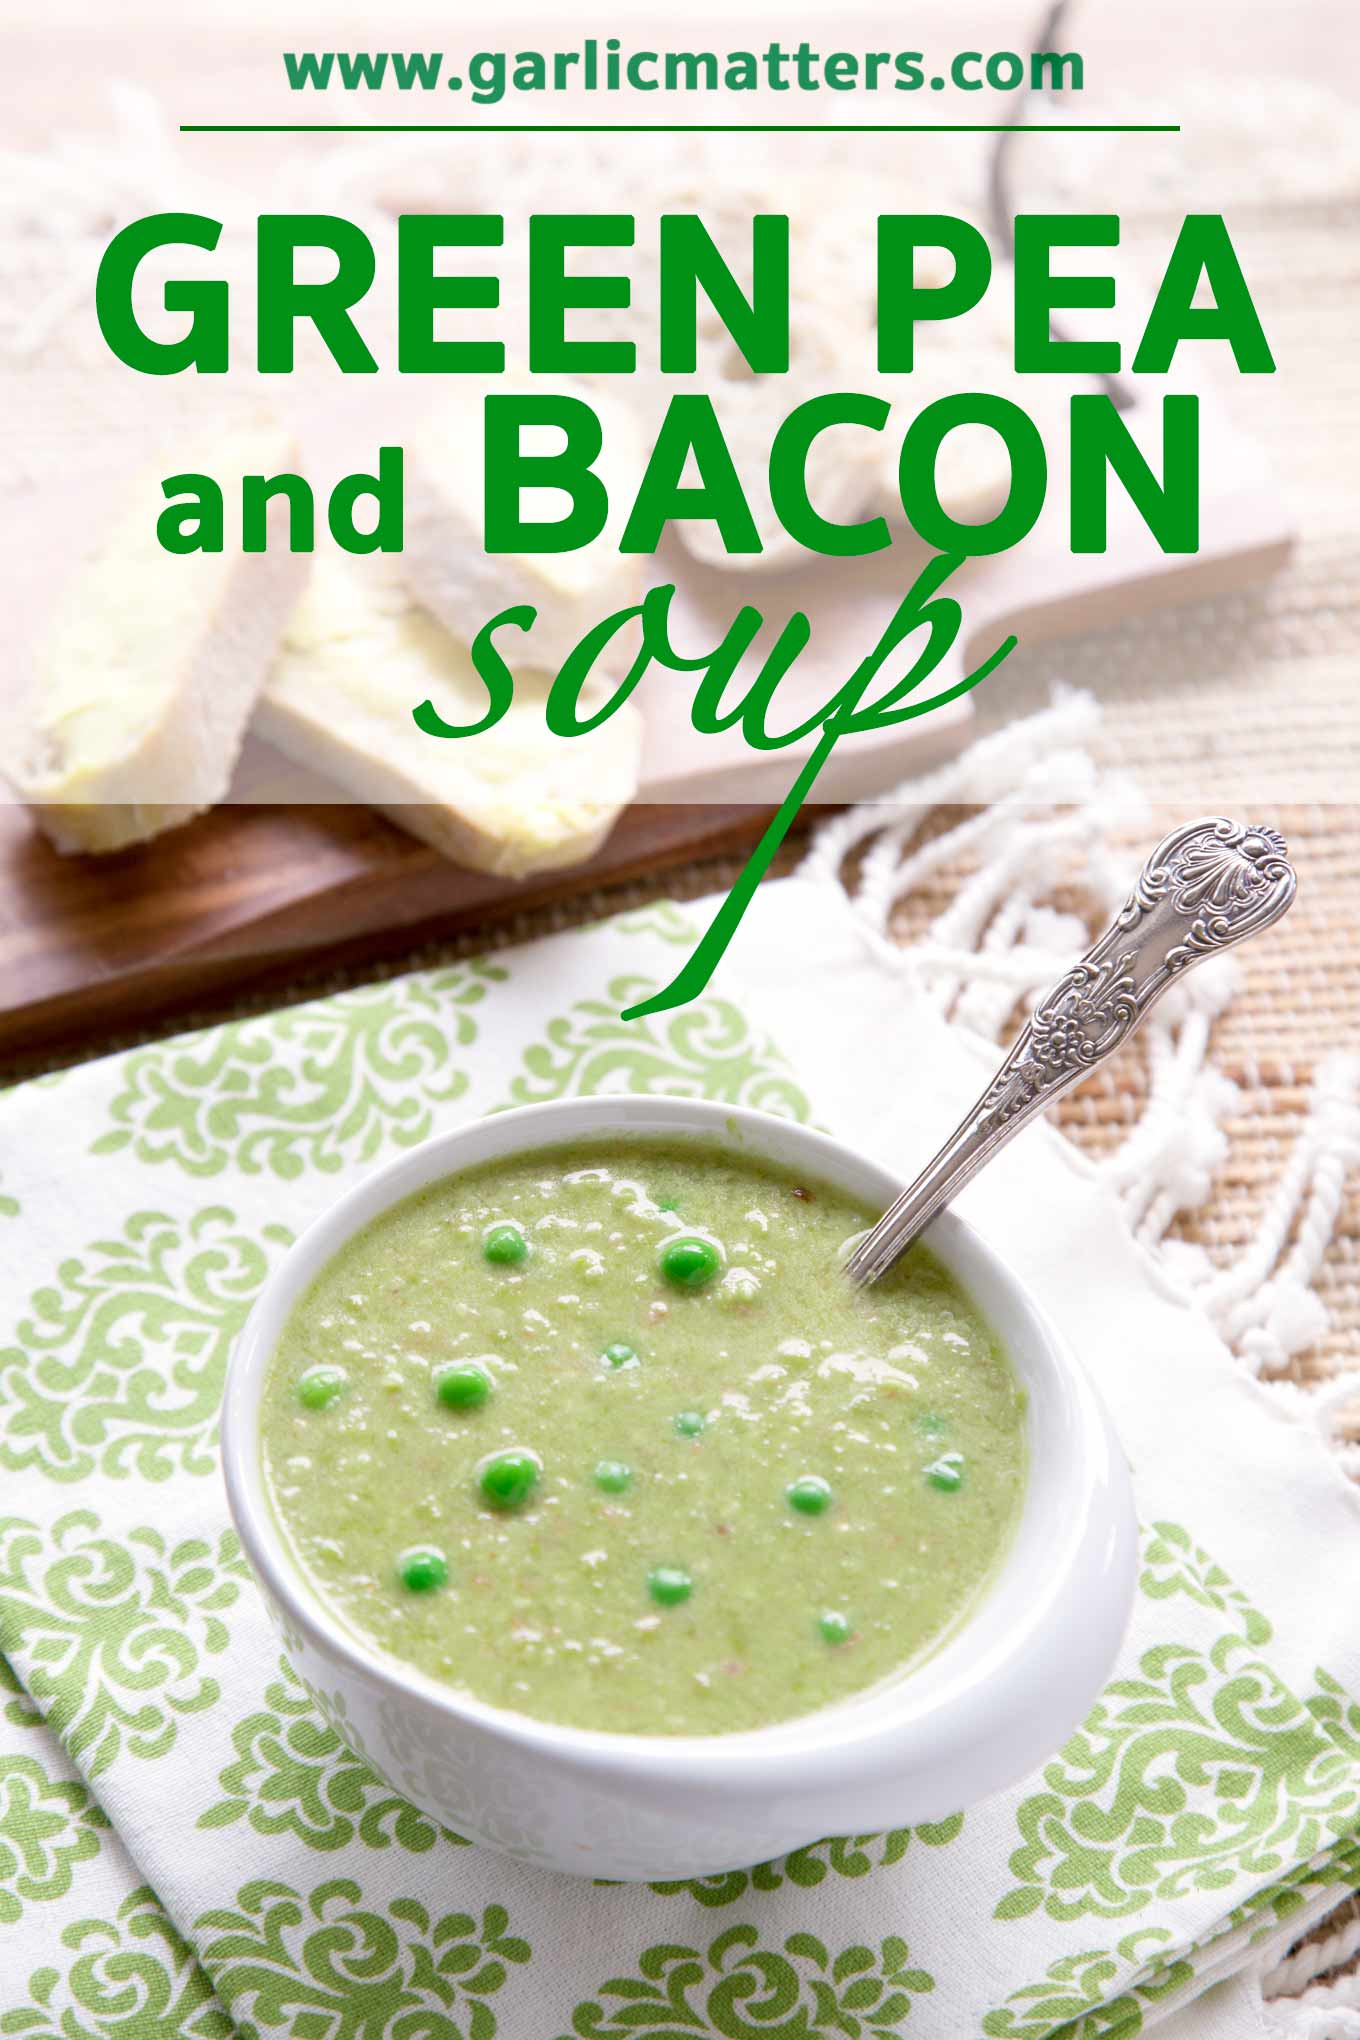 Green Pea and Bacon Soup Recipe is a delicious, gluten-free and quick. Ready in 30 min rustic, sweet and earthy, made with fresh, green peas.